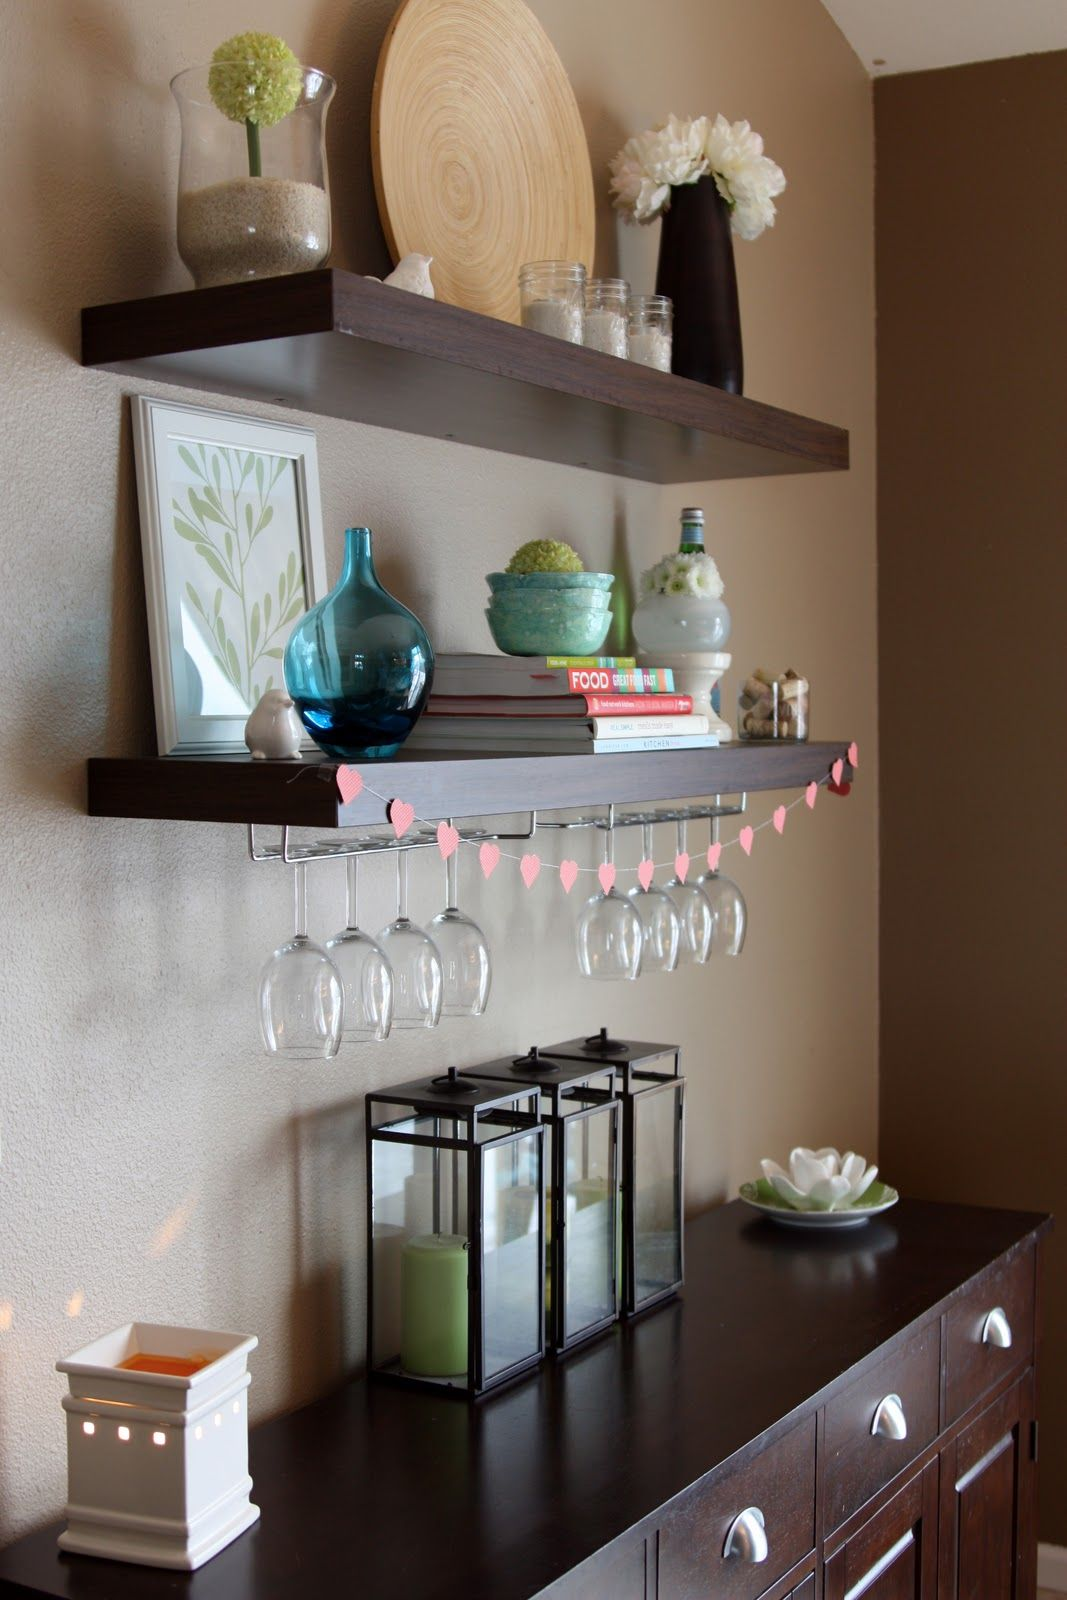 Dining Room Wall Shelves Love The Wine Glass Holders Incorporated Into The Shelving